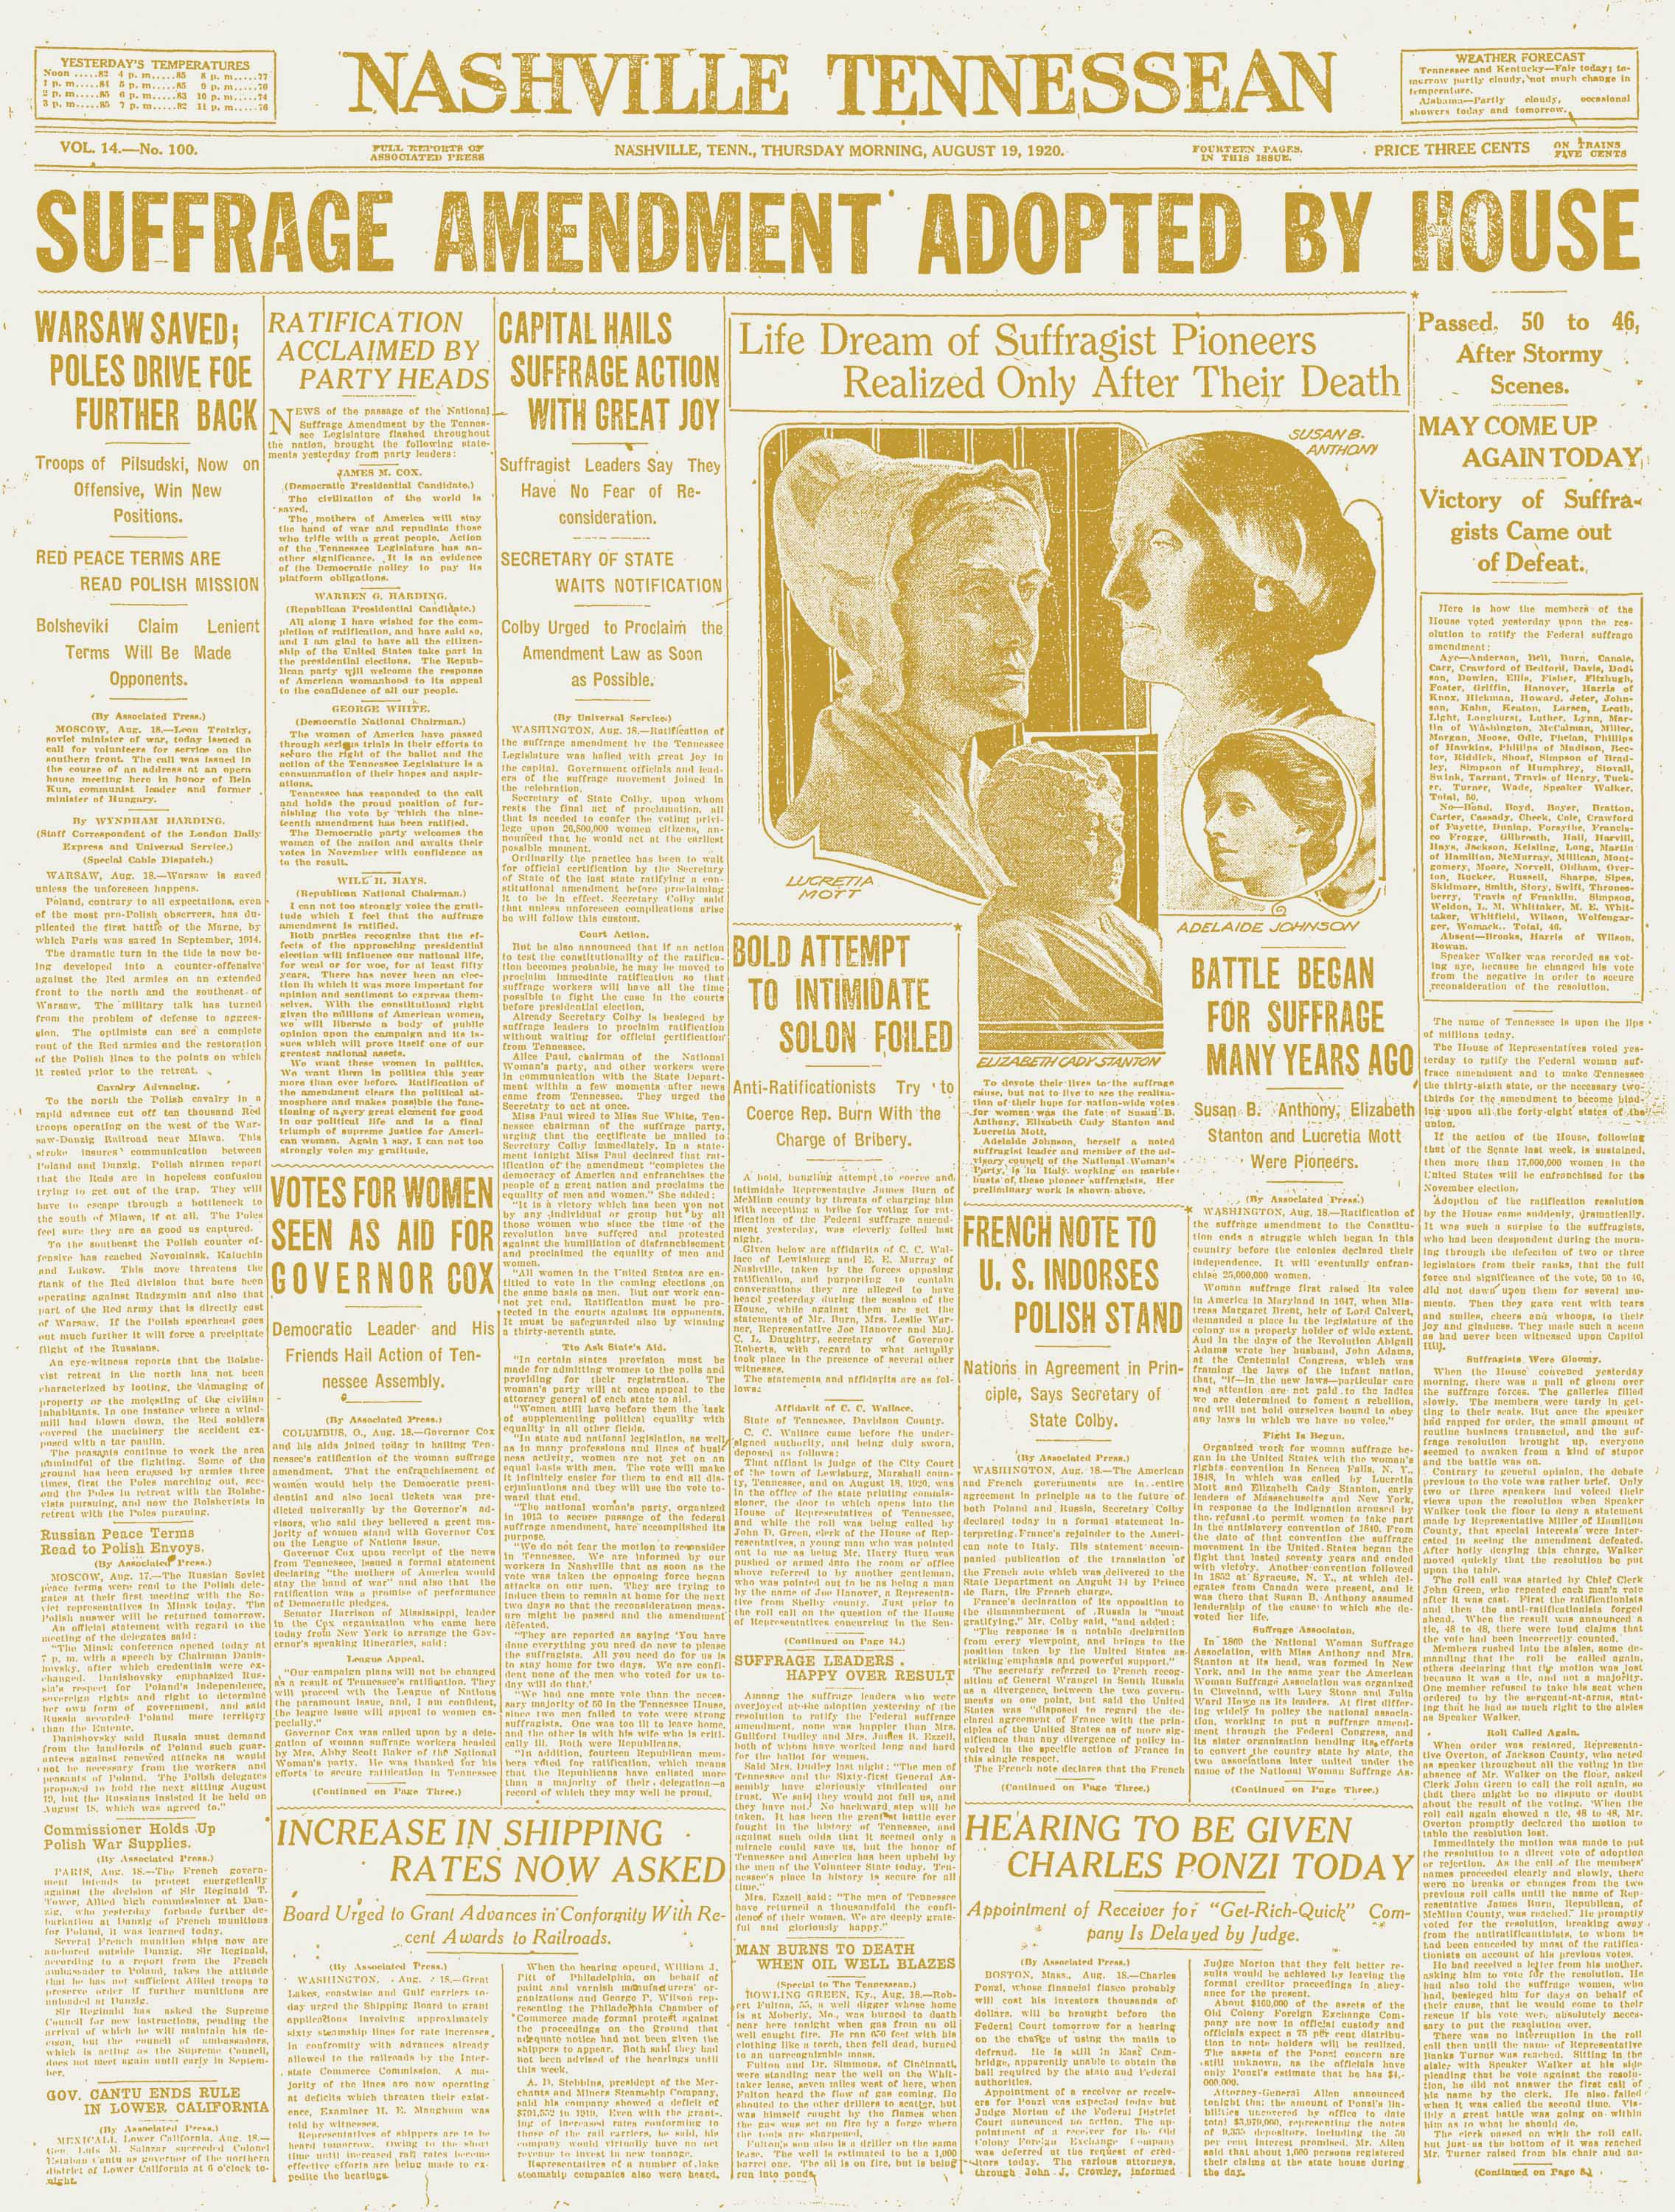 The Tennessean coverage of Tennessee's ratification of the 19th Amendment for women suffrage on Aug. 19, 1920.